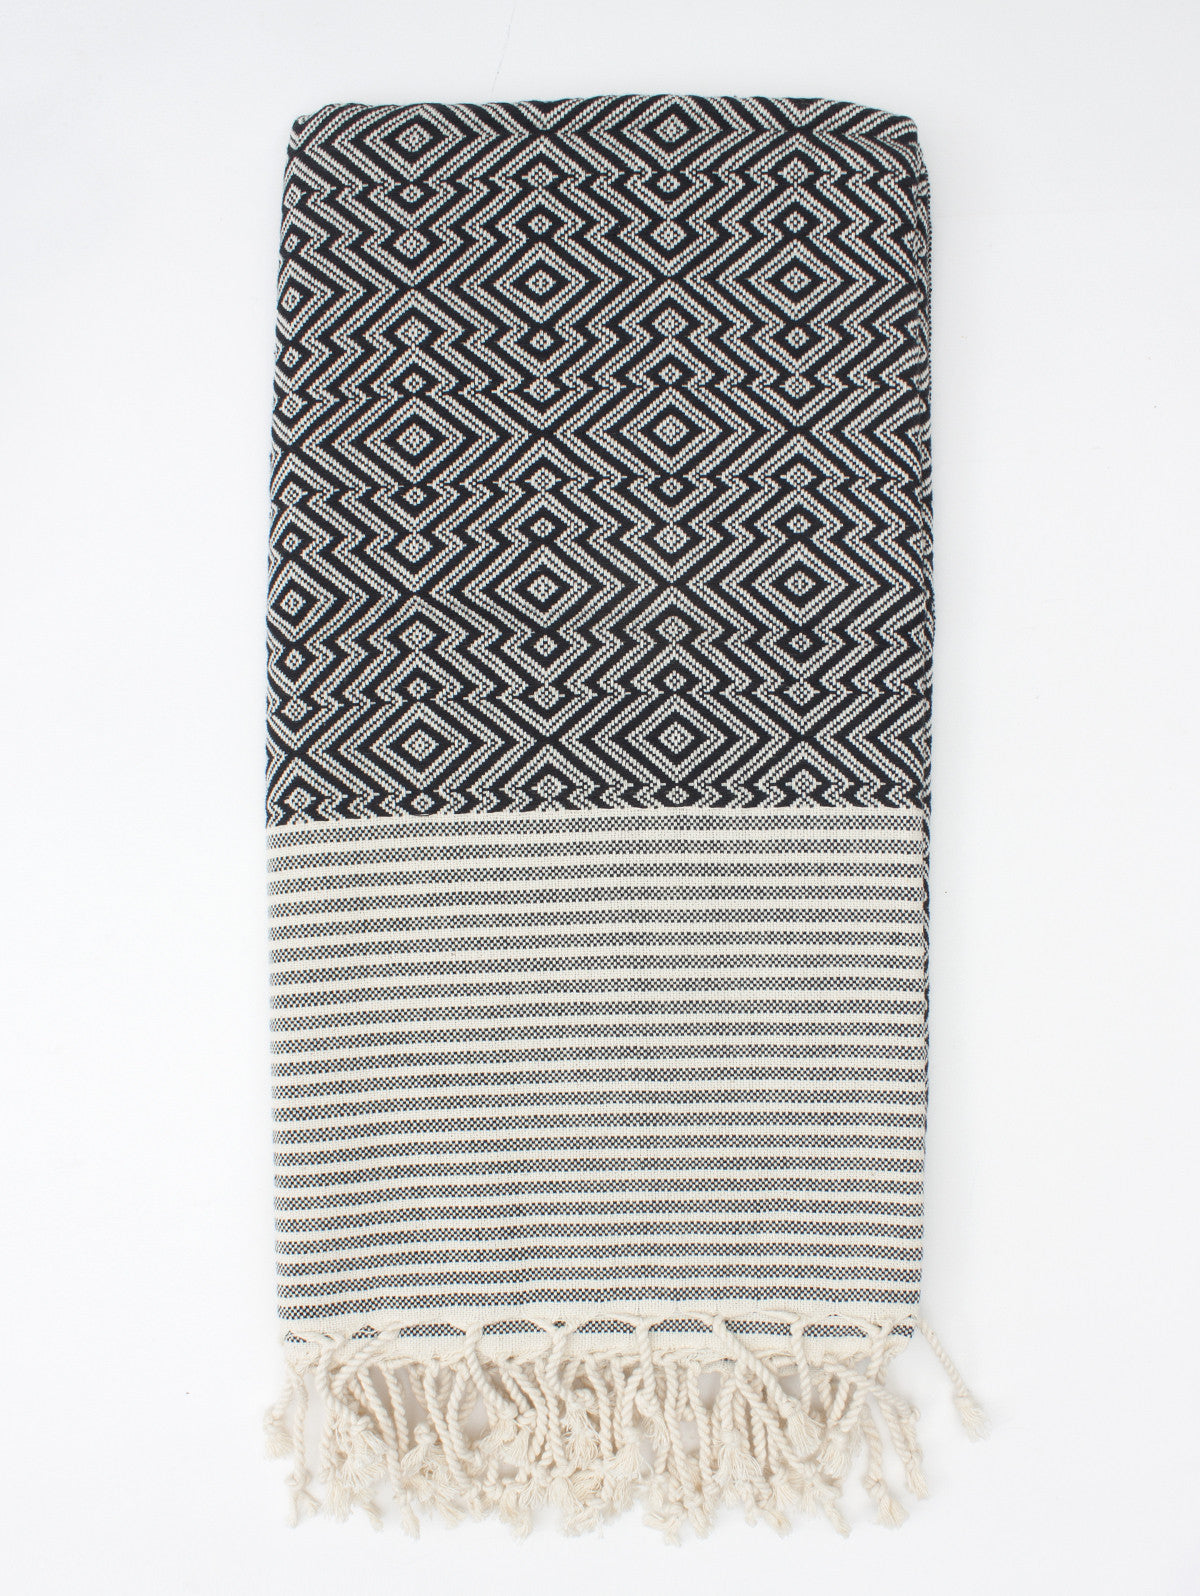 Inca Hammam Towel, Black